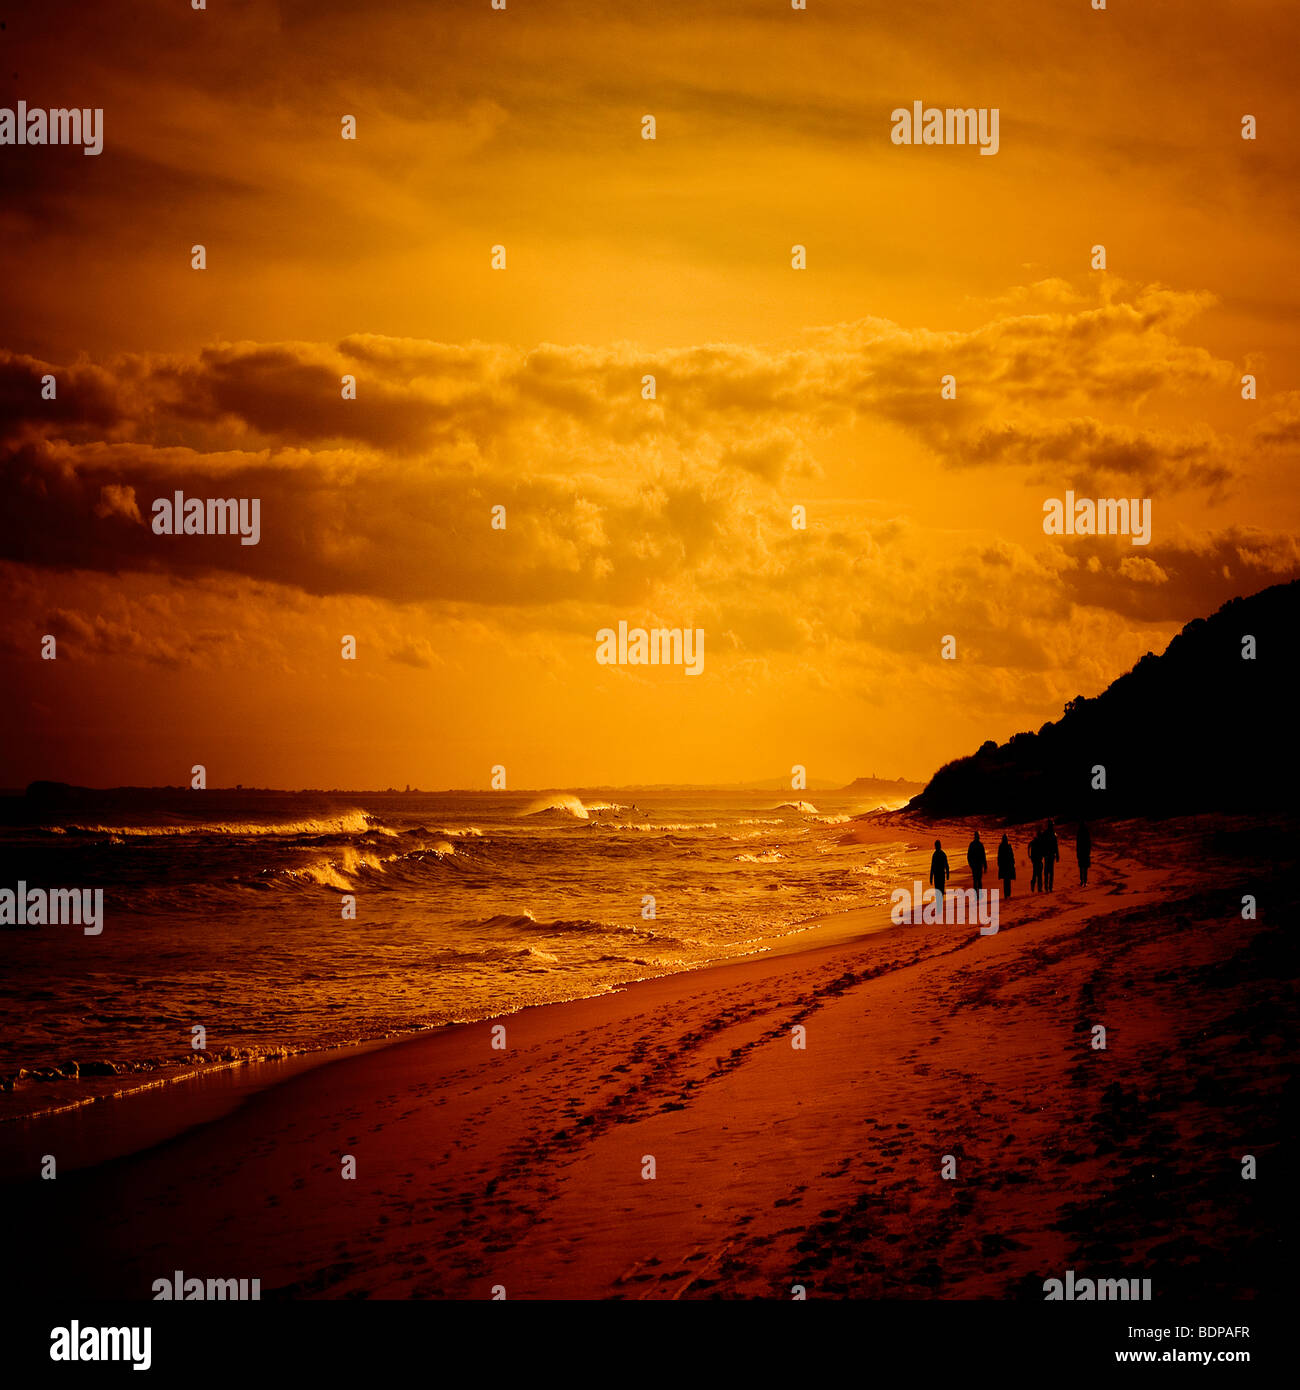 An Australian sunset with figures walking in the distance - Stock Image